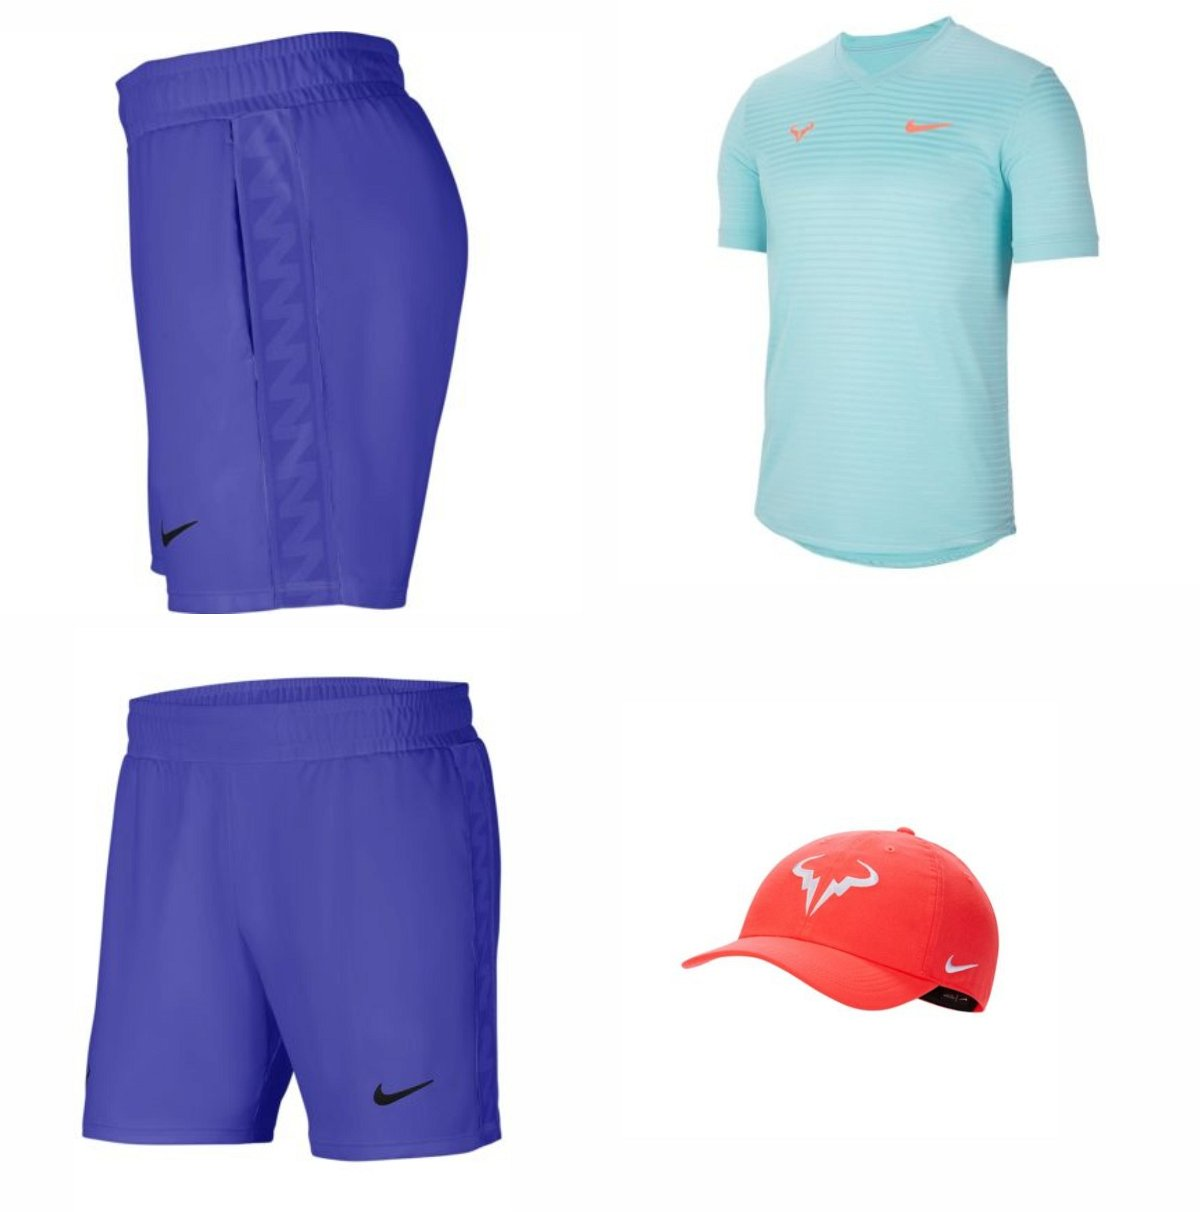 Nike Releases Rafael Nadal S French Open Outfit Amidst Doubts Regarding Cancelation Essentiallysports